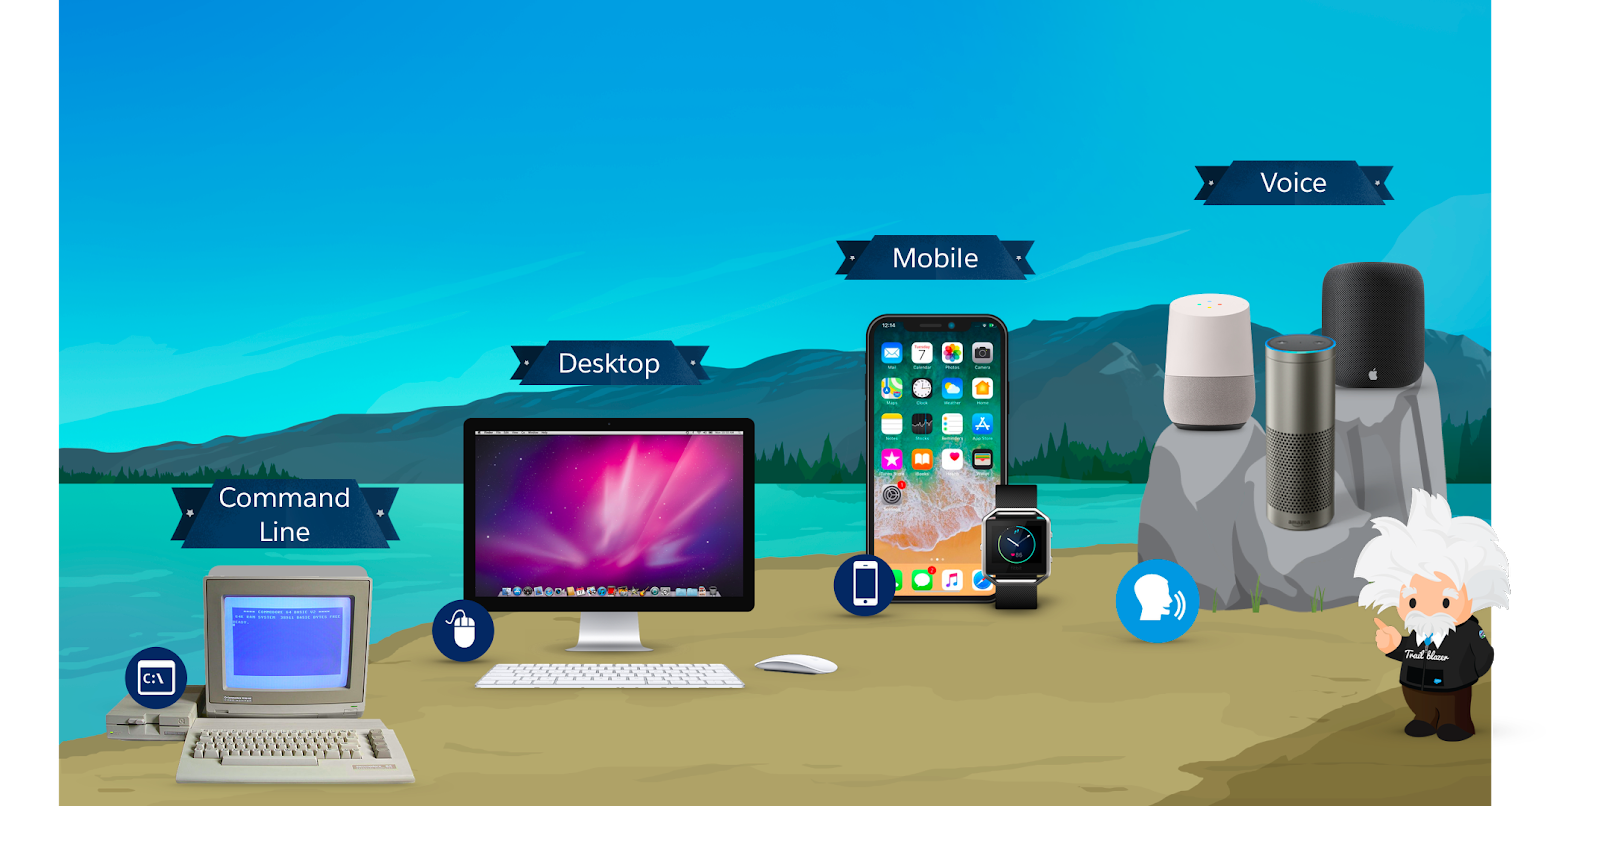 Corresponding image of the evolution of the user interface showing the command line, desktop, mobile, and now voice.